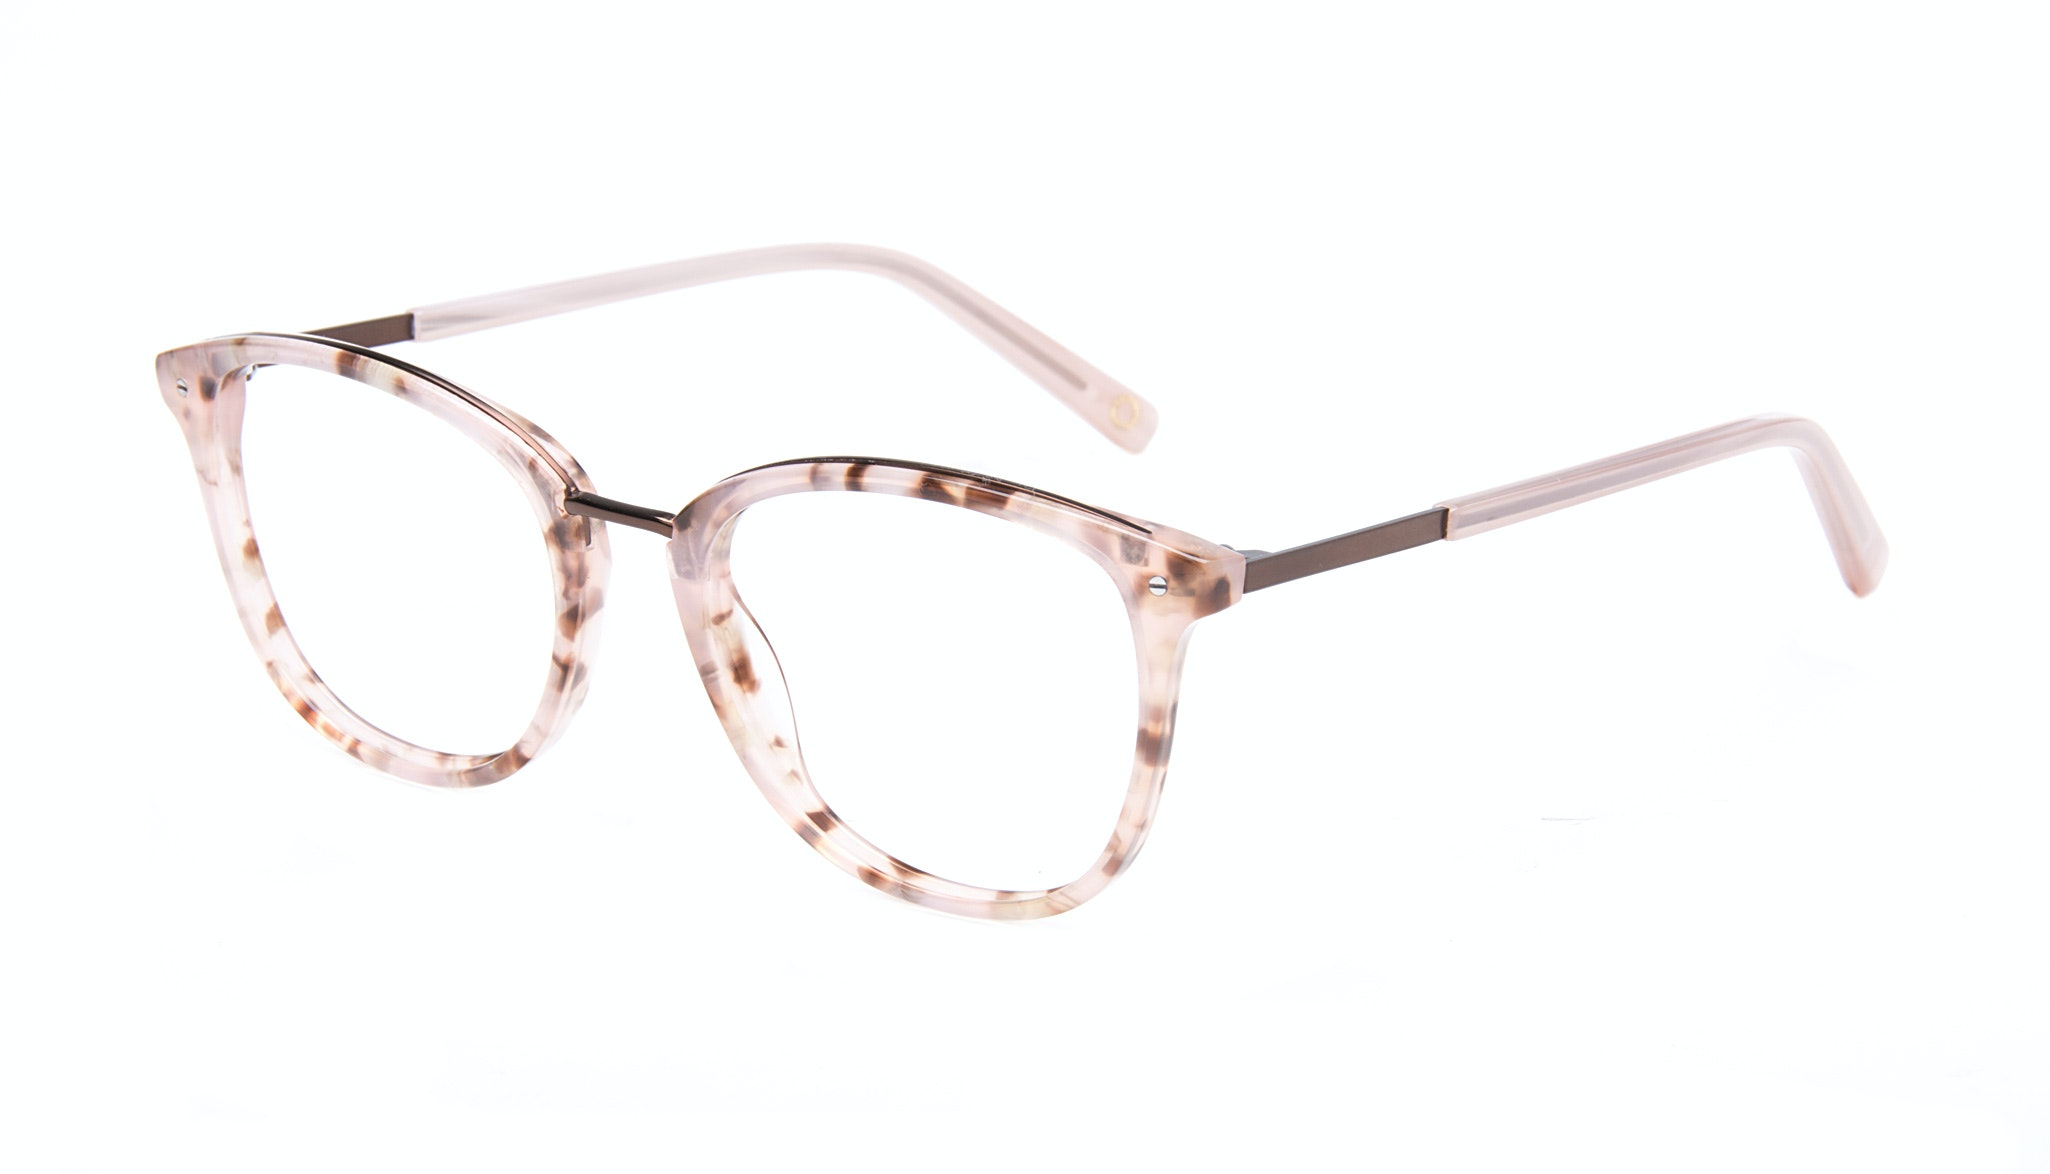 Affordable Fashion Glasses Square Round Eyeglasses Women Ella Blush Tortie Tilt